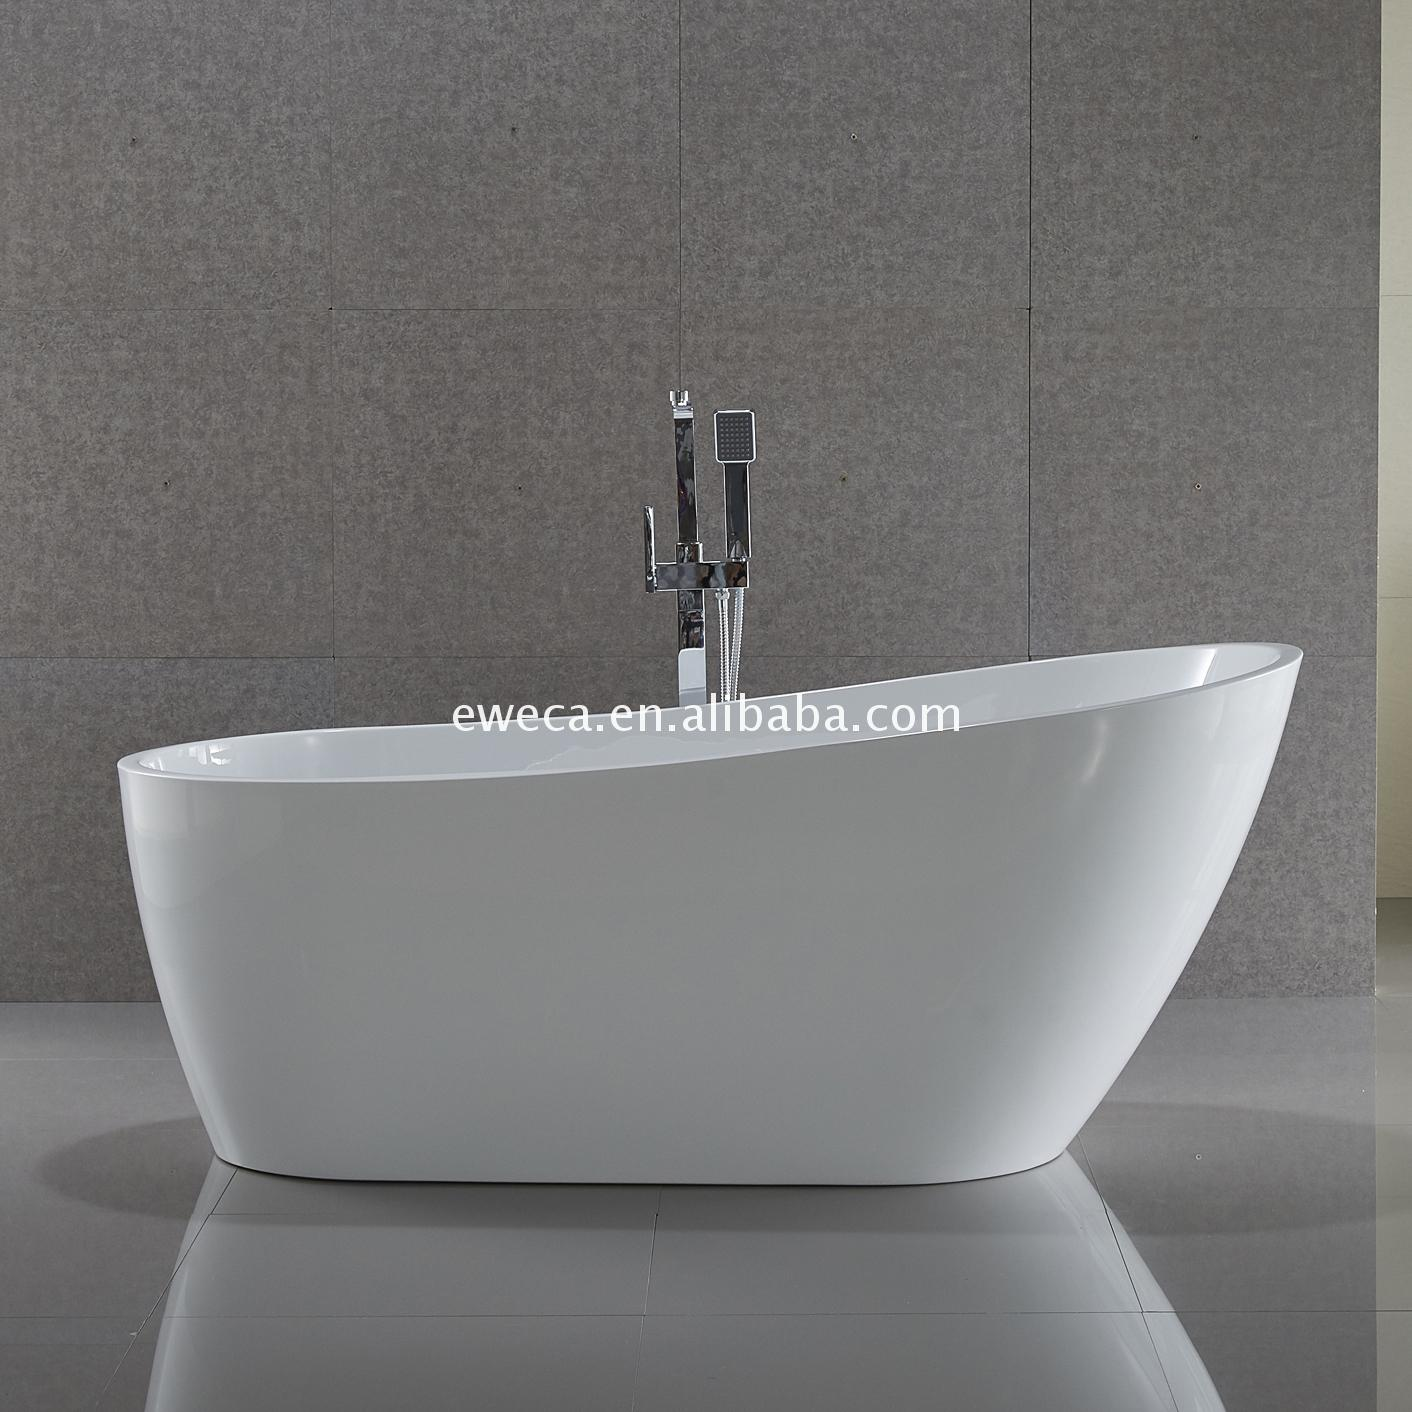 High Quality Antique Tin Bathtub Tub Sculpture With Discount - Buy ...